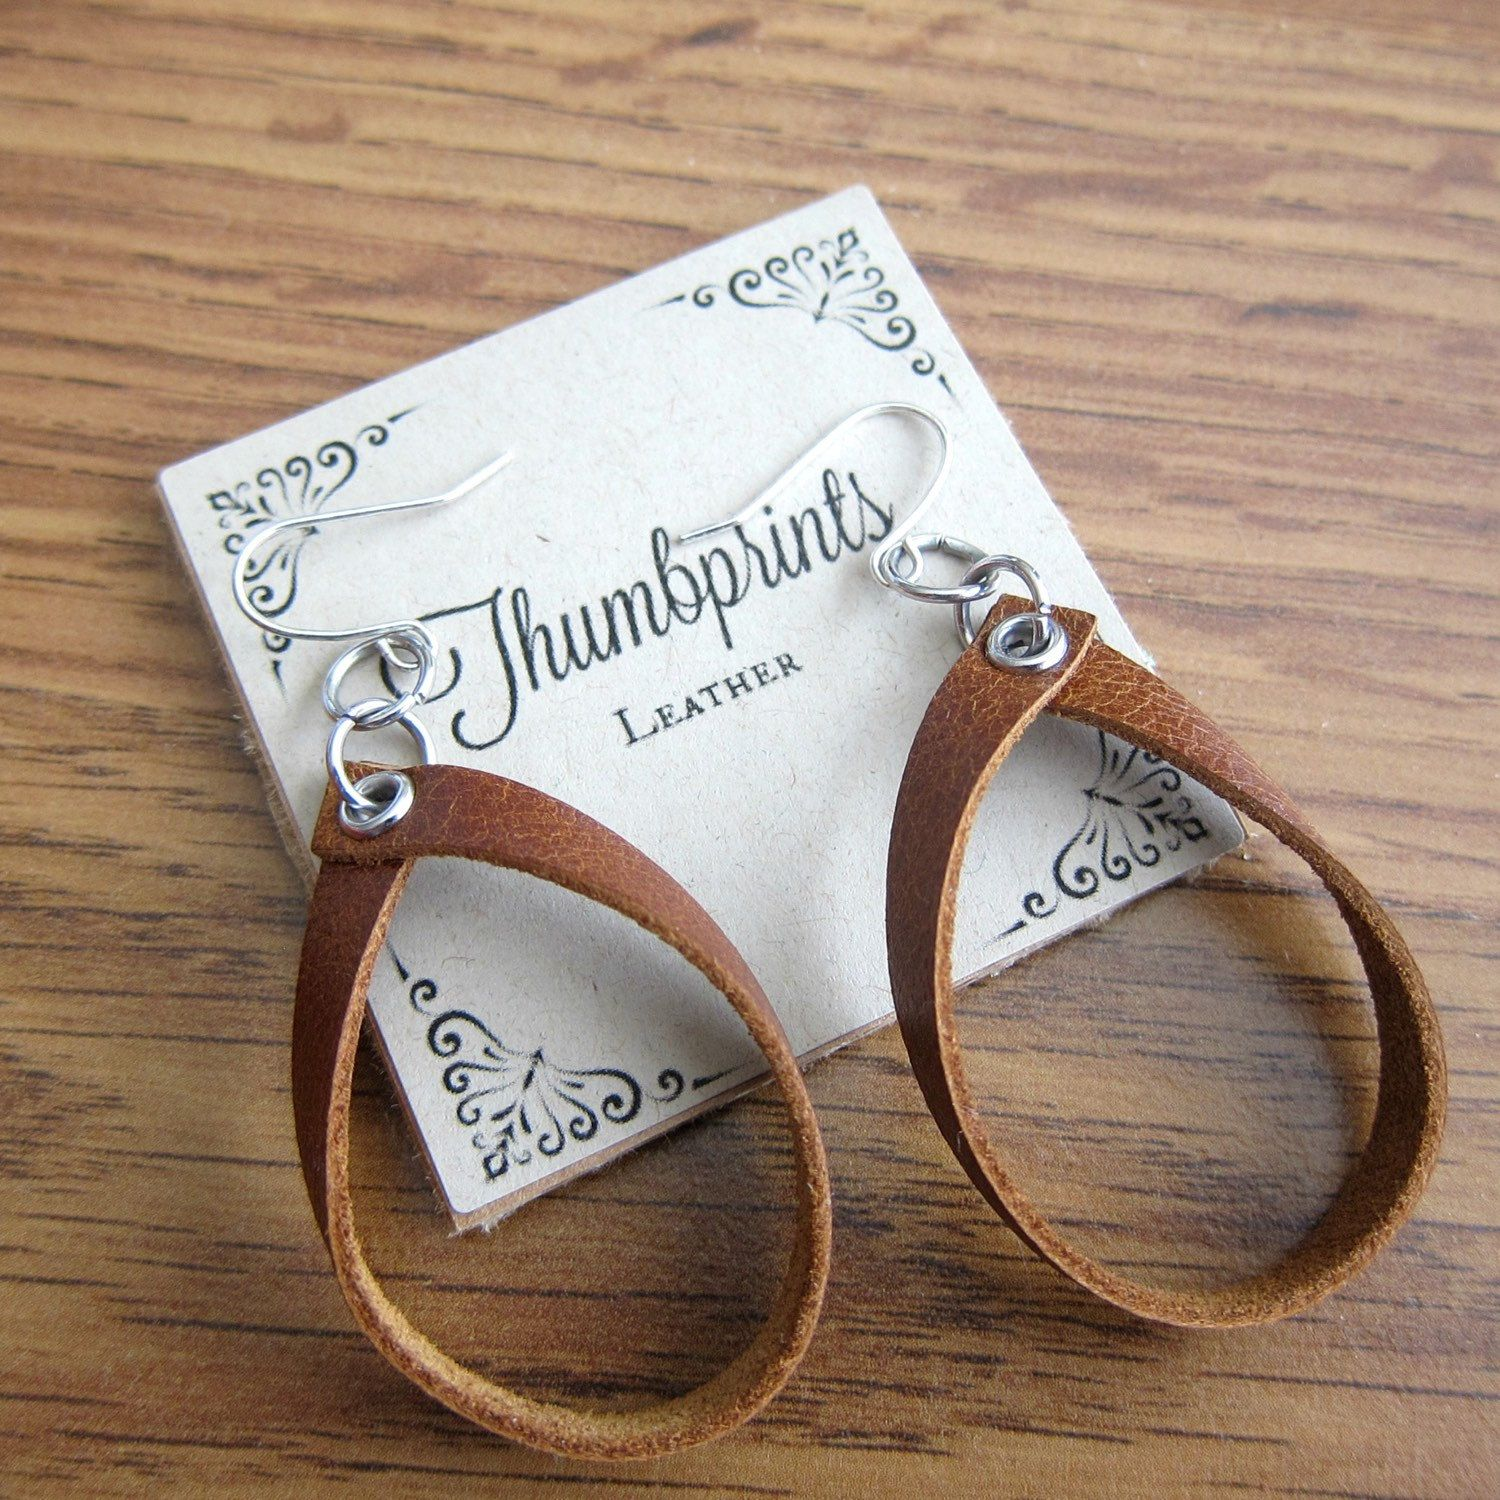 Thumbprints Leather is branching out into the earring market!